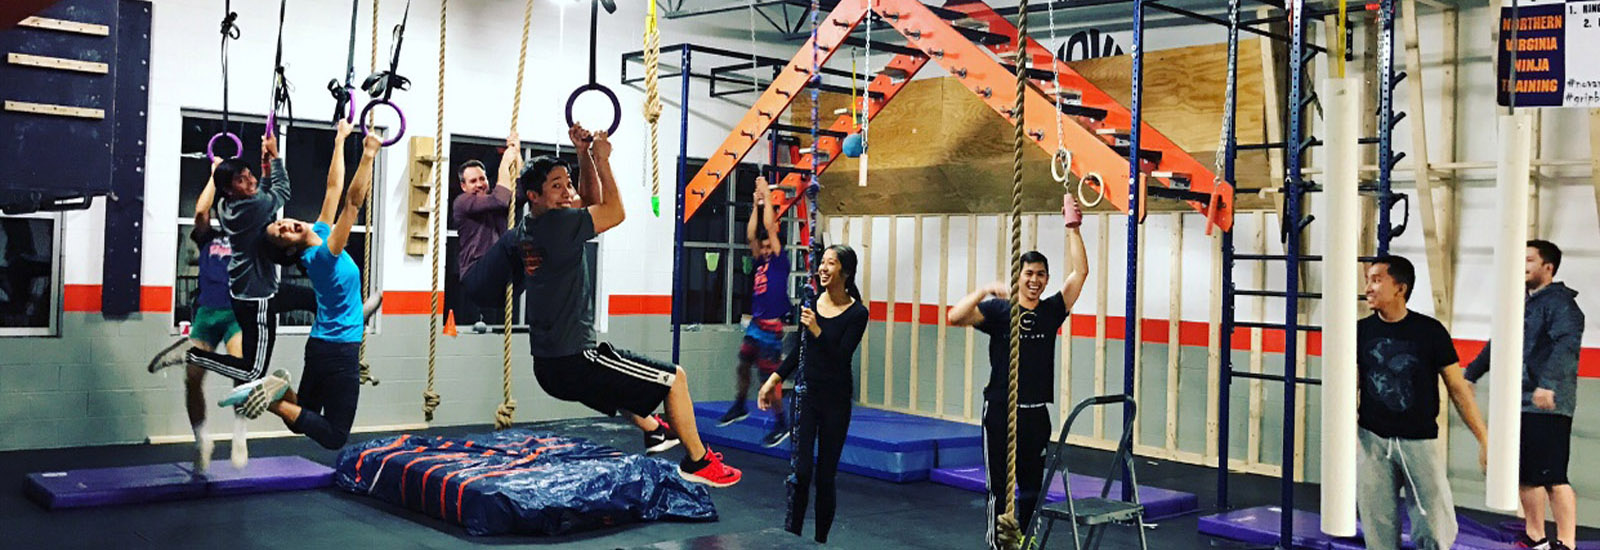 Garage Gym Warrior Northern Virginia Ninja A Loudoun County Based Ninja Warrior Gym